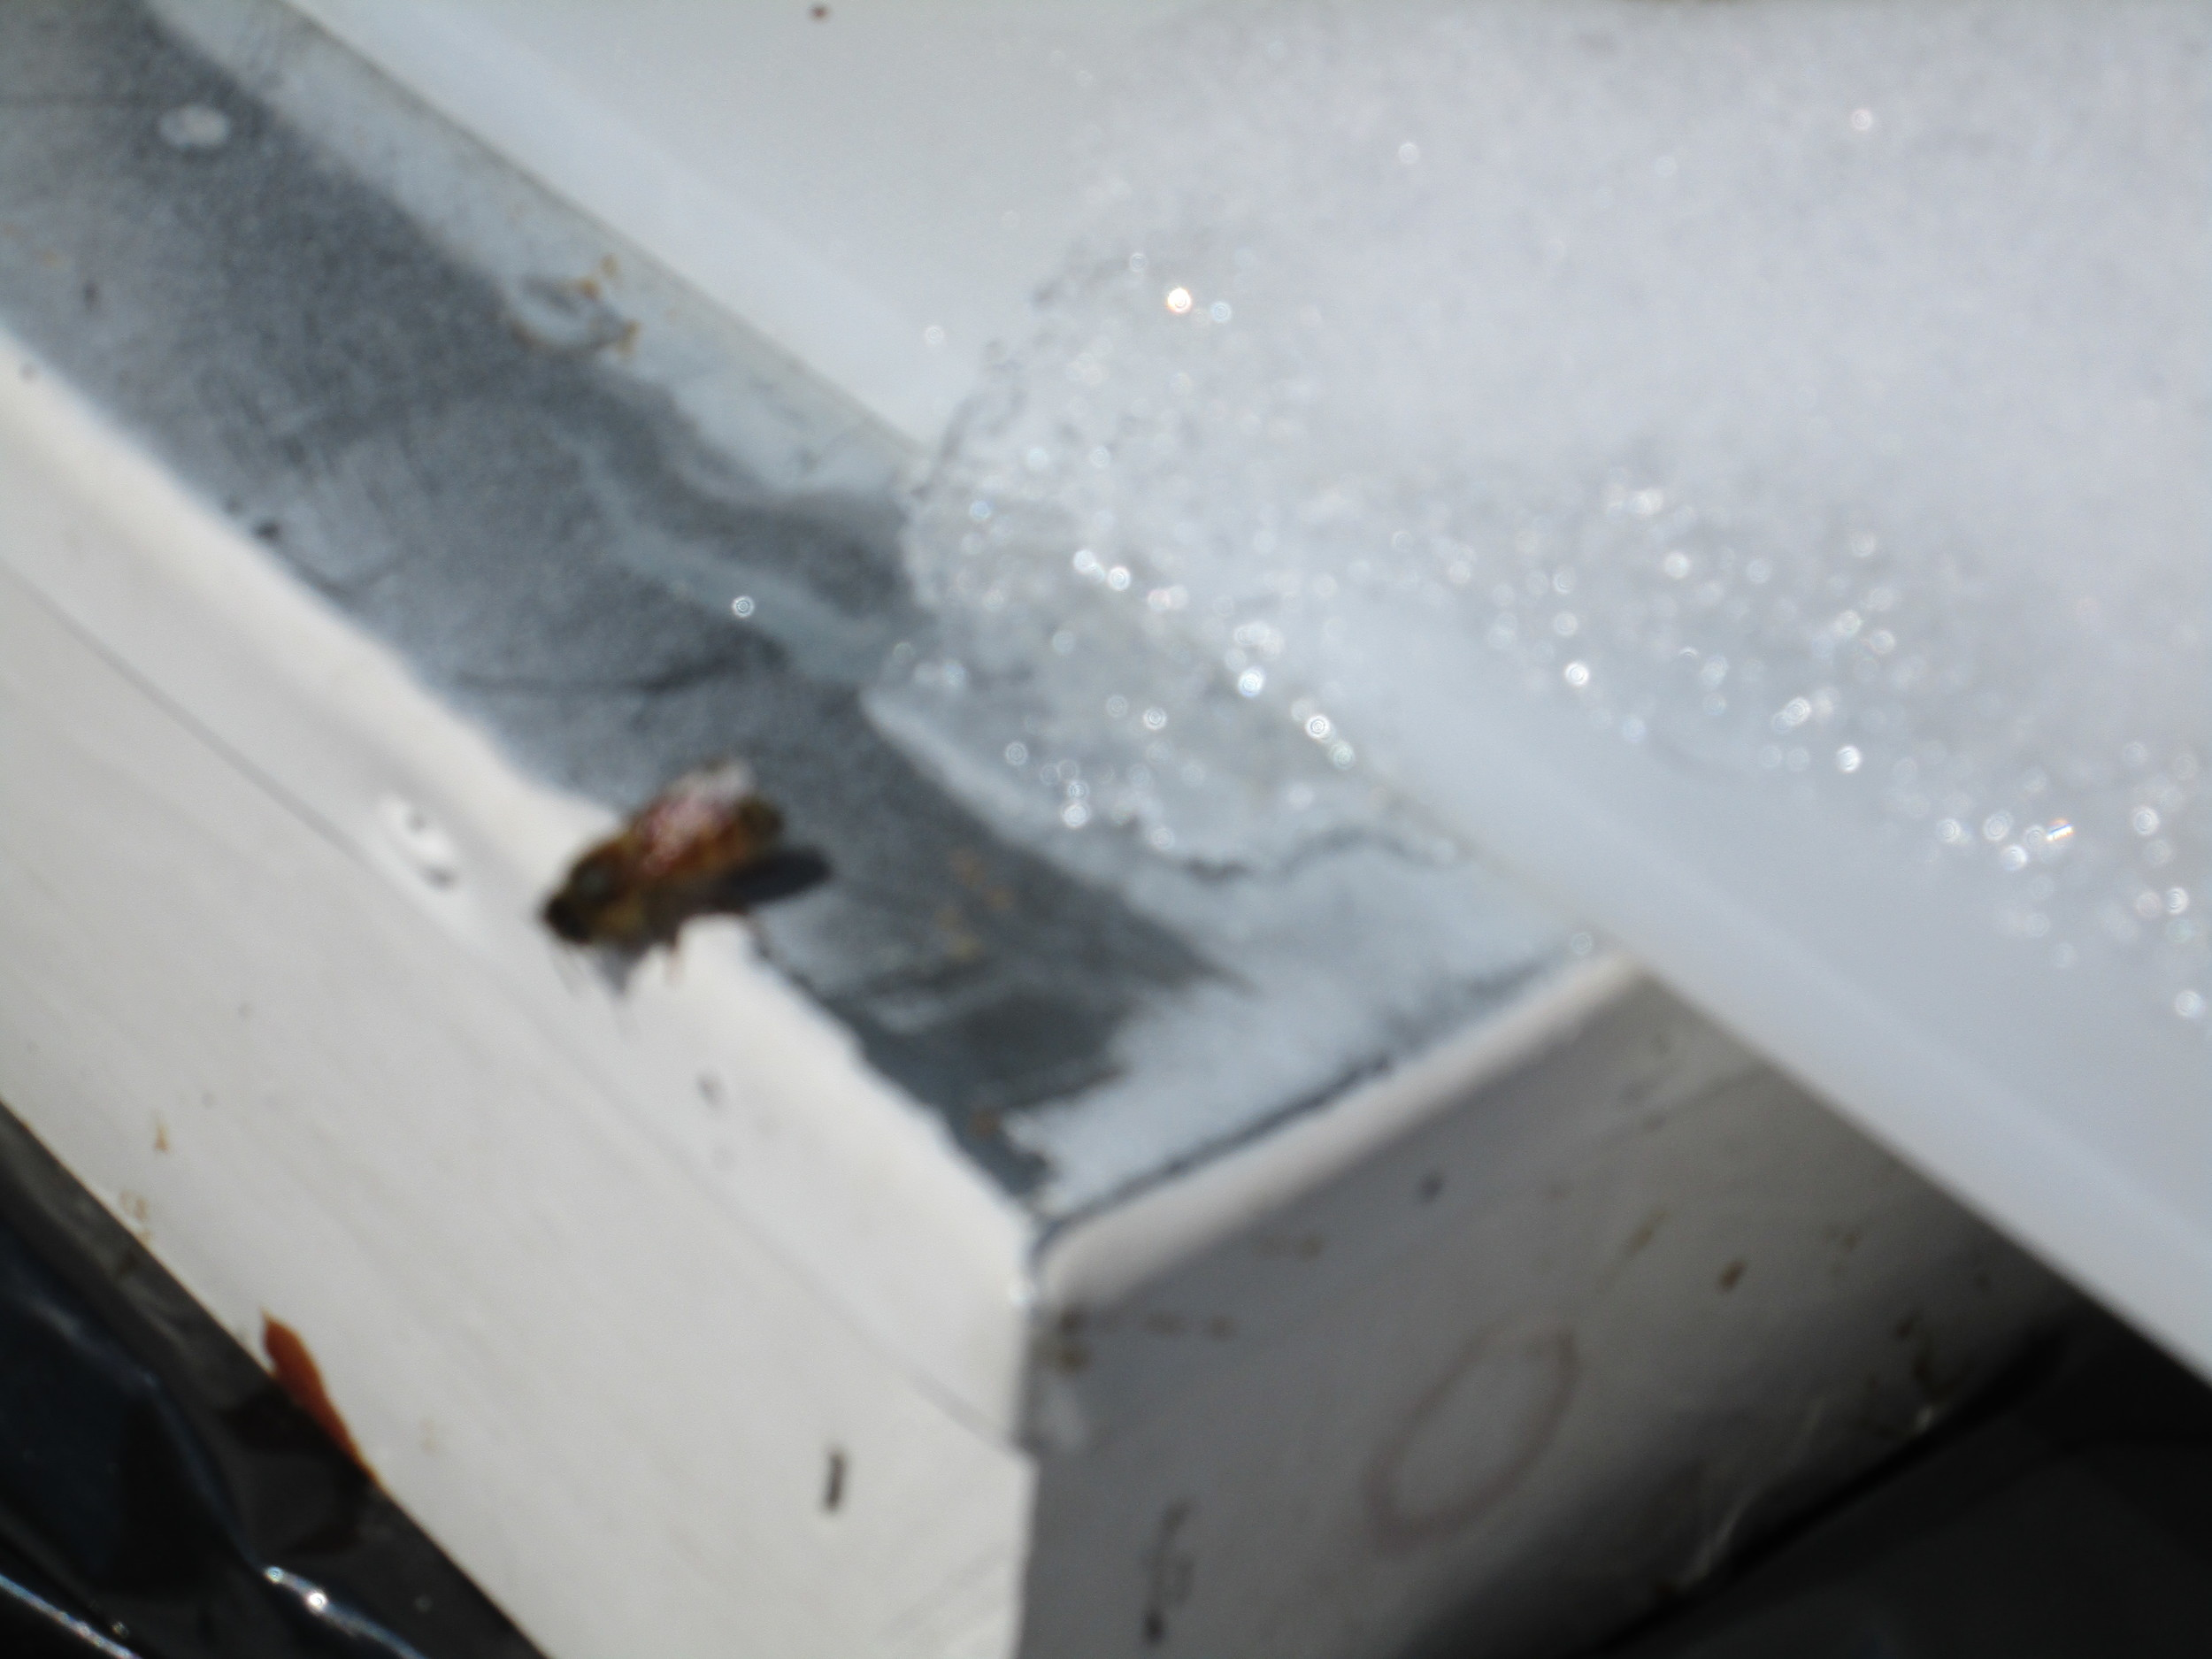 April 3rd.  Bee on lid of hive with ice and snow. Not that great a picture, but you get the idea.